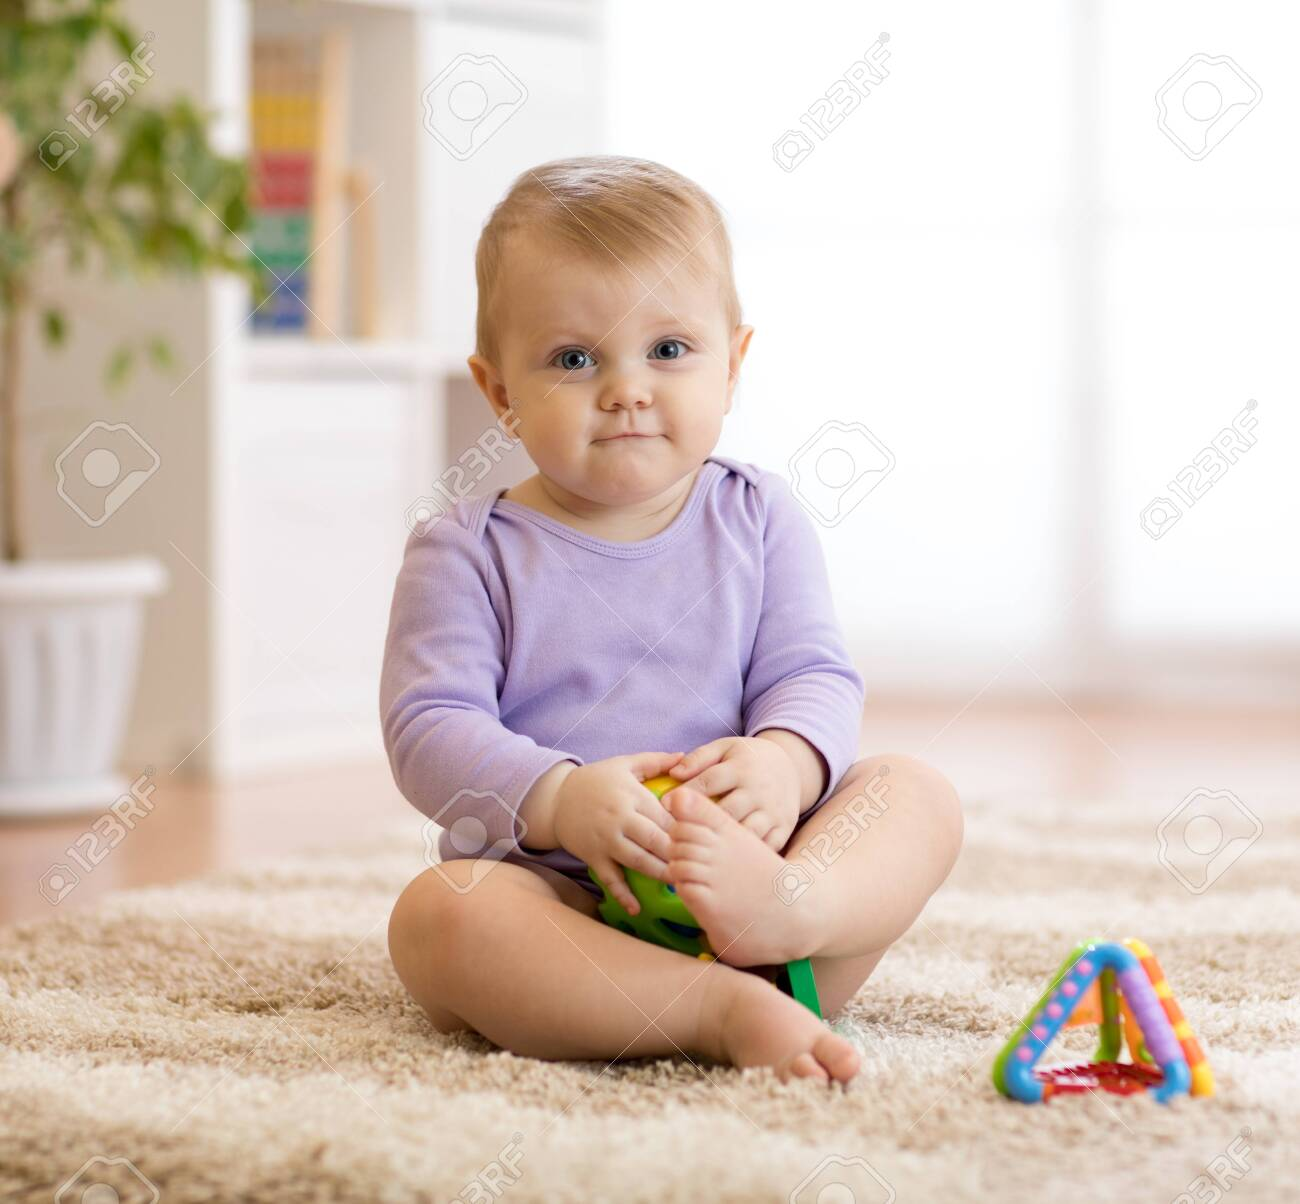 cute funny baby sitting on carpet at home - 124452355